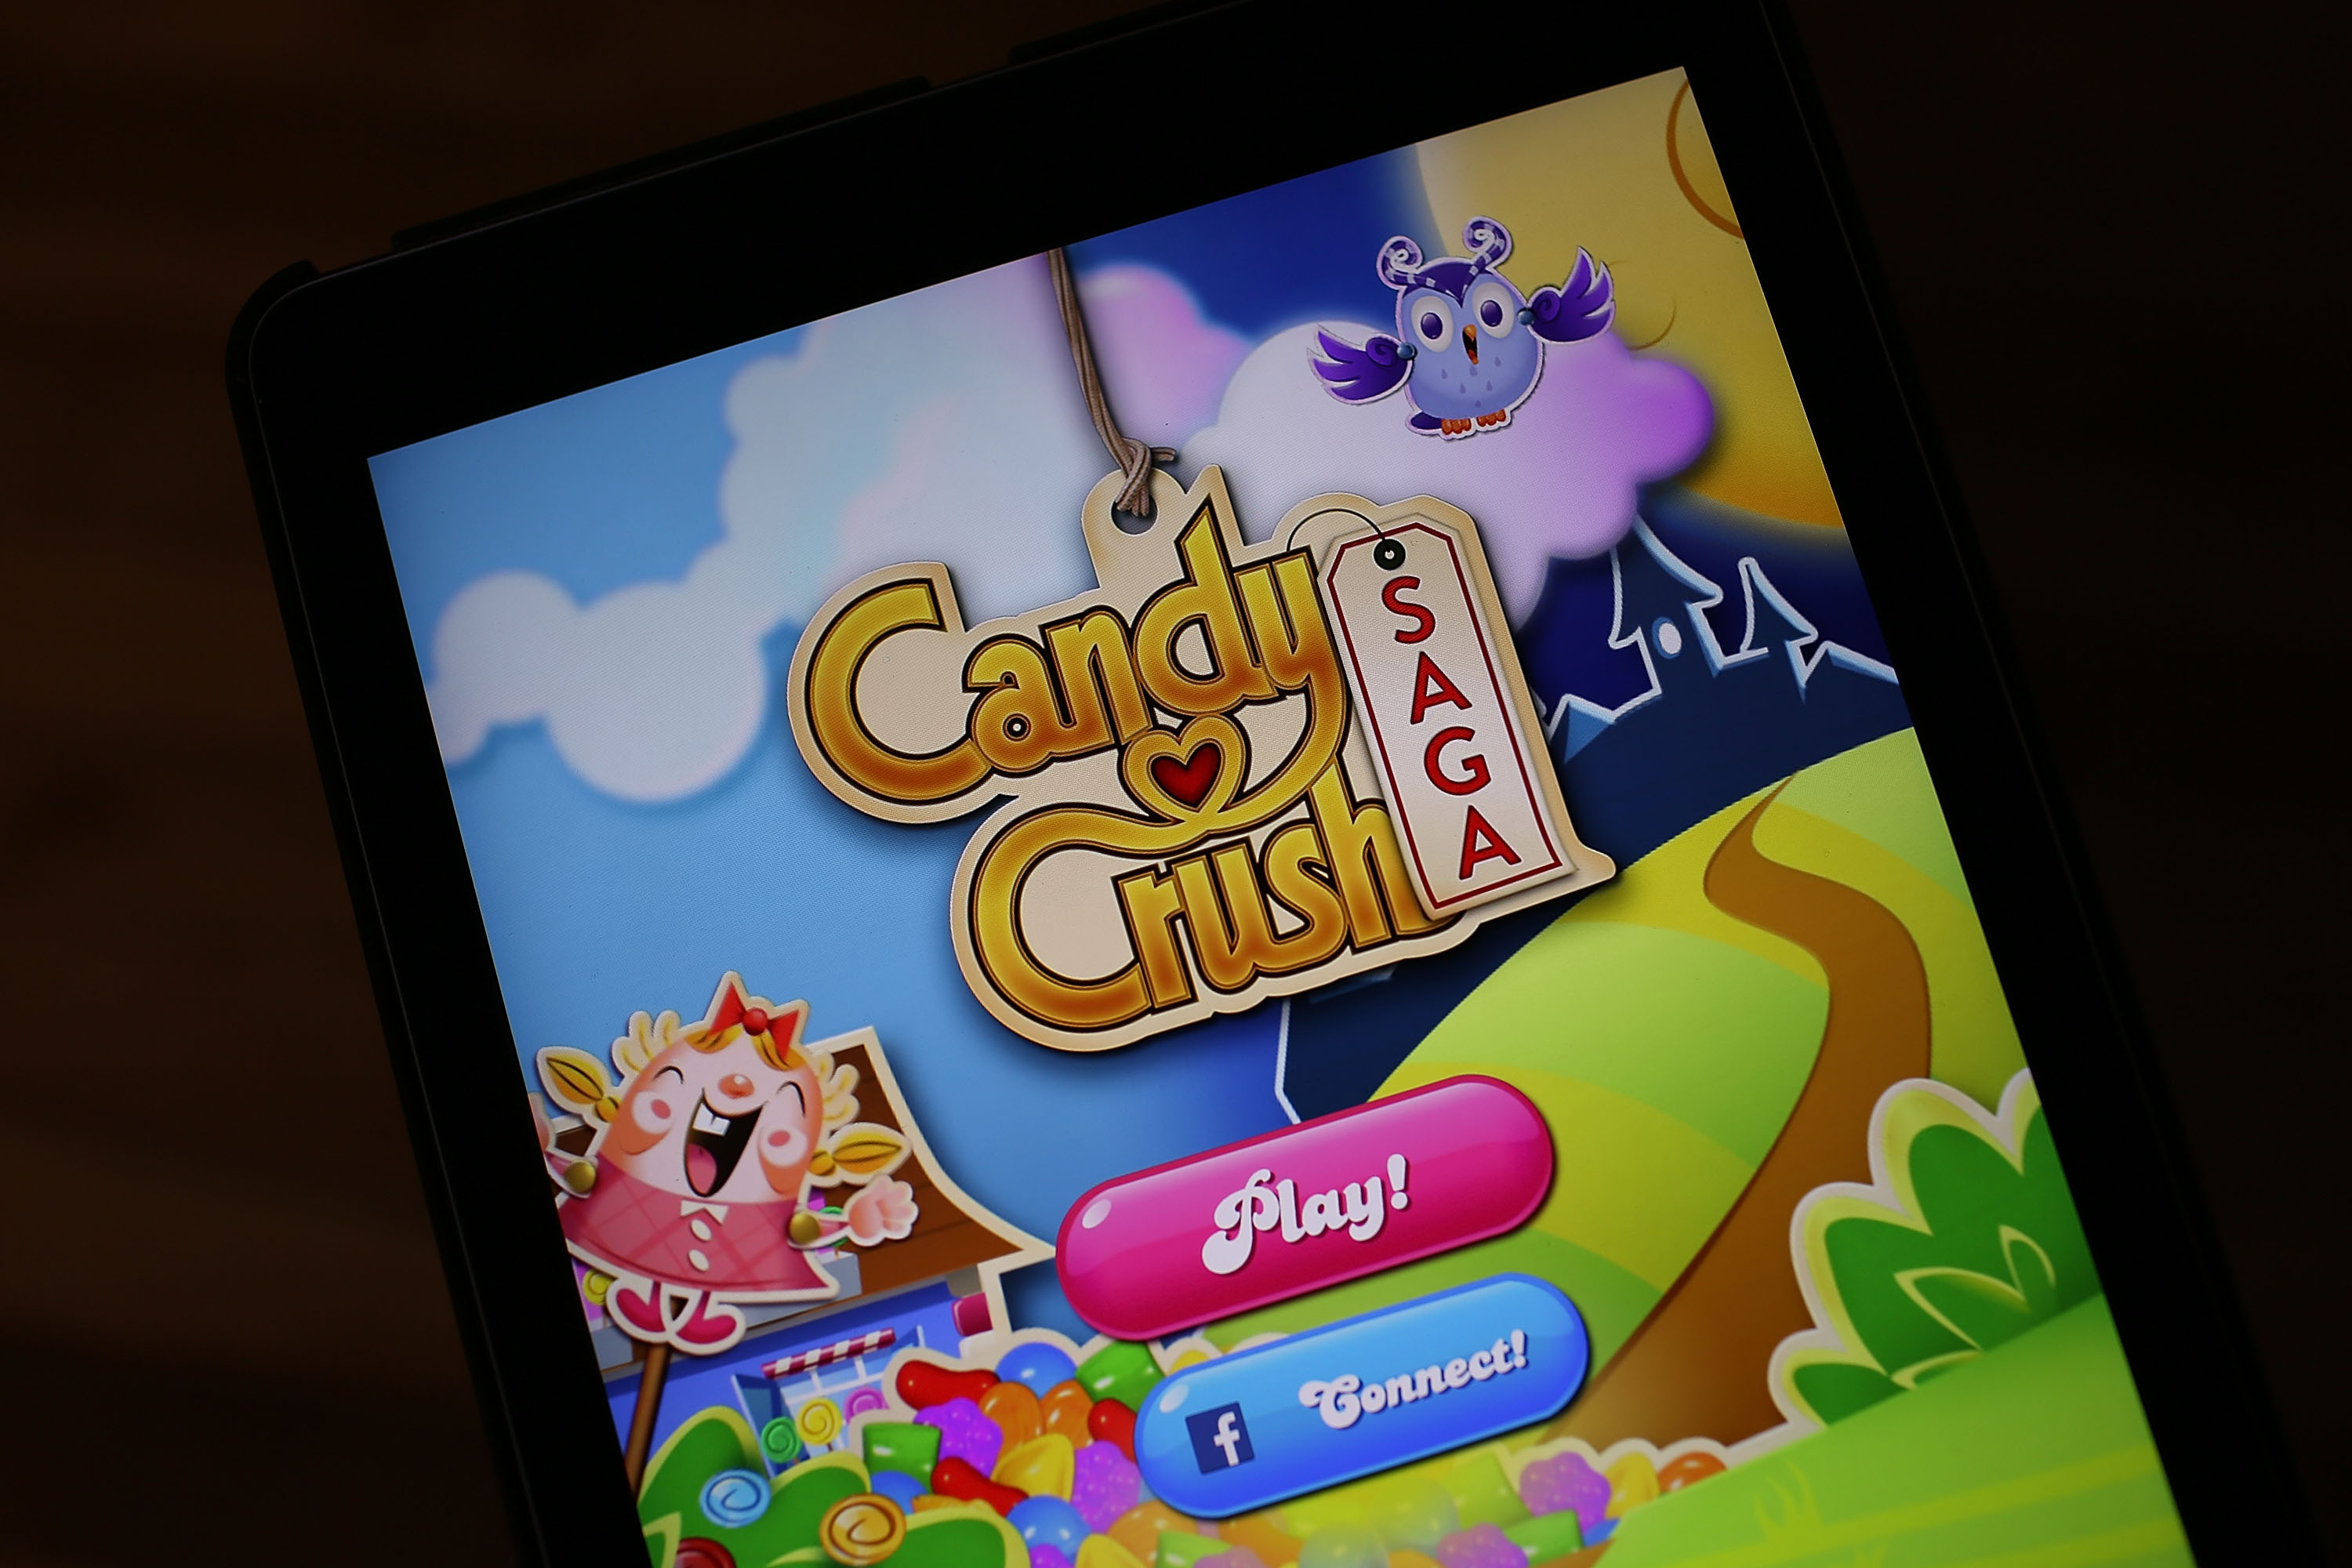 In this photo illustration, a Candy Crush game is seen on an iPad on November 3, 2015 in Miami, Florida. It was announced today that game maker Activision Blizzard has paid $5.9 billion to purchase King, the parent company of games like Candy Crush Saga and Bubble Witch Saga.